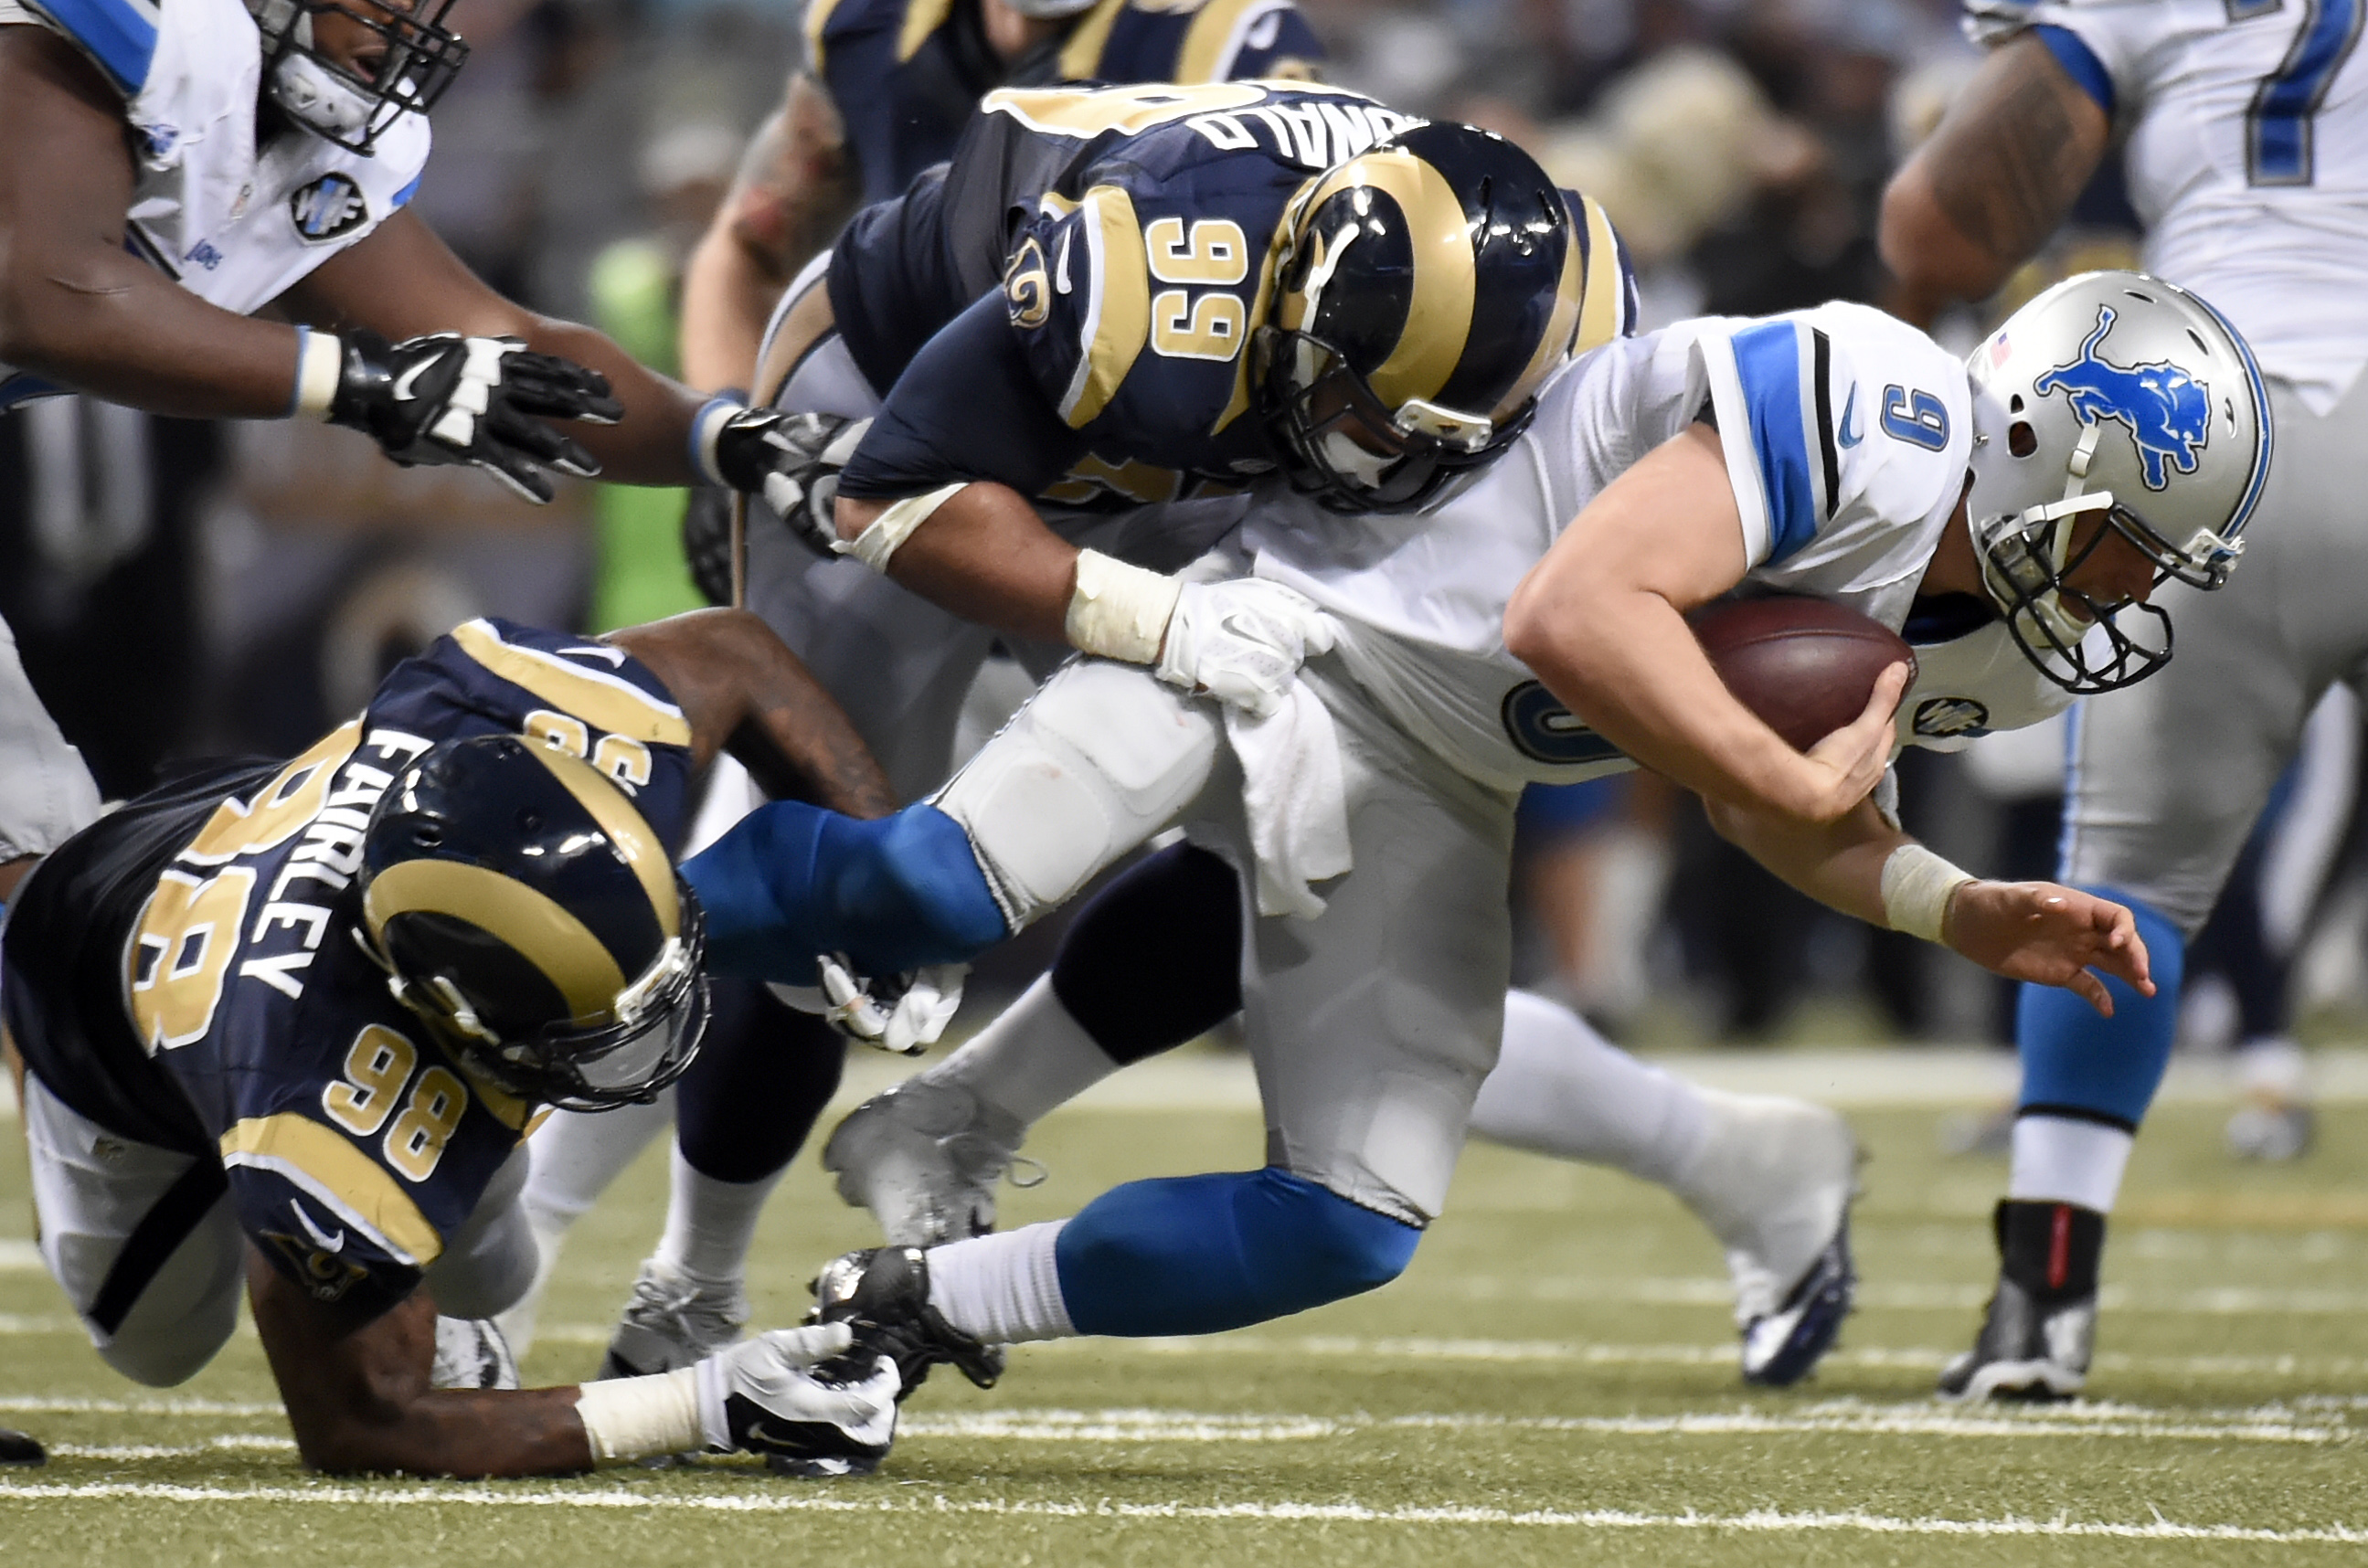 Detroit Lions quarterback Matthew Stafford, right, is sacked for a 7-yard loss by St. Louis Rams defensive tackle Aaron Donald (99) as Rams' defensive tackle Nick Fairley, left, gets in on the play during the fourth quarter of an NFL football game Sunday,